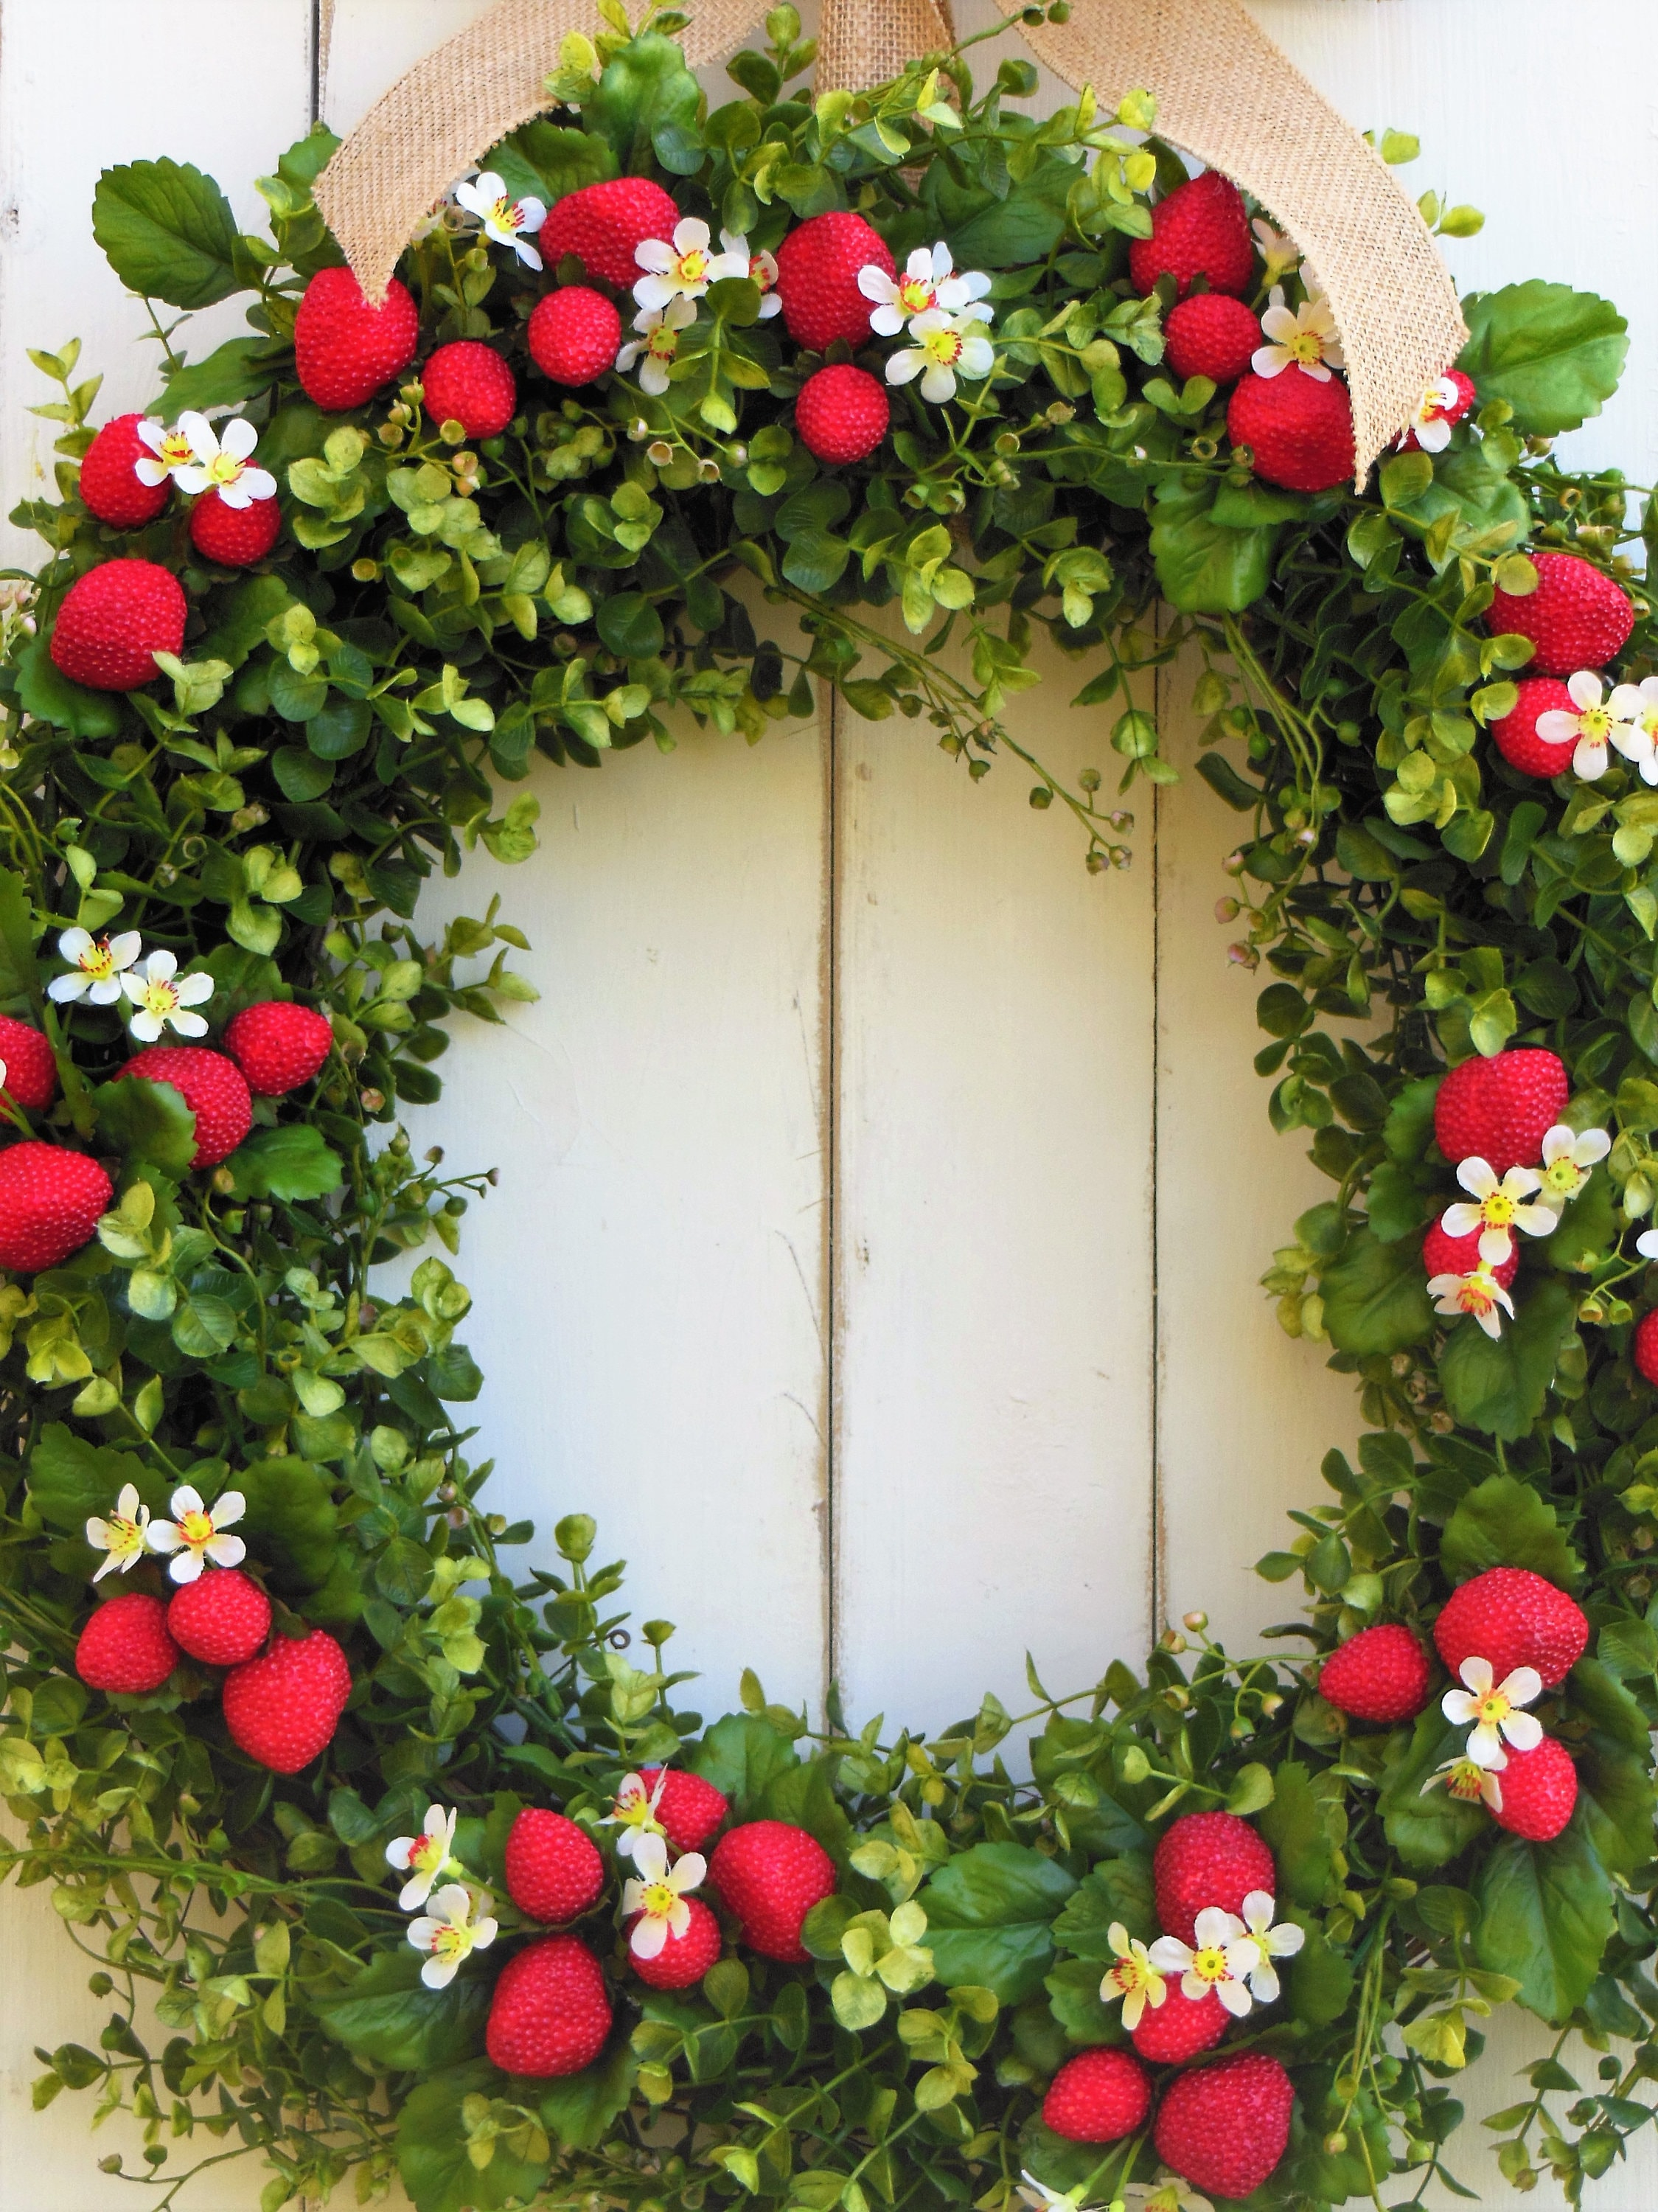 door less a your damaging wreaths how hang to than without wreath